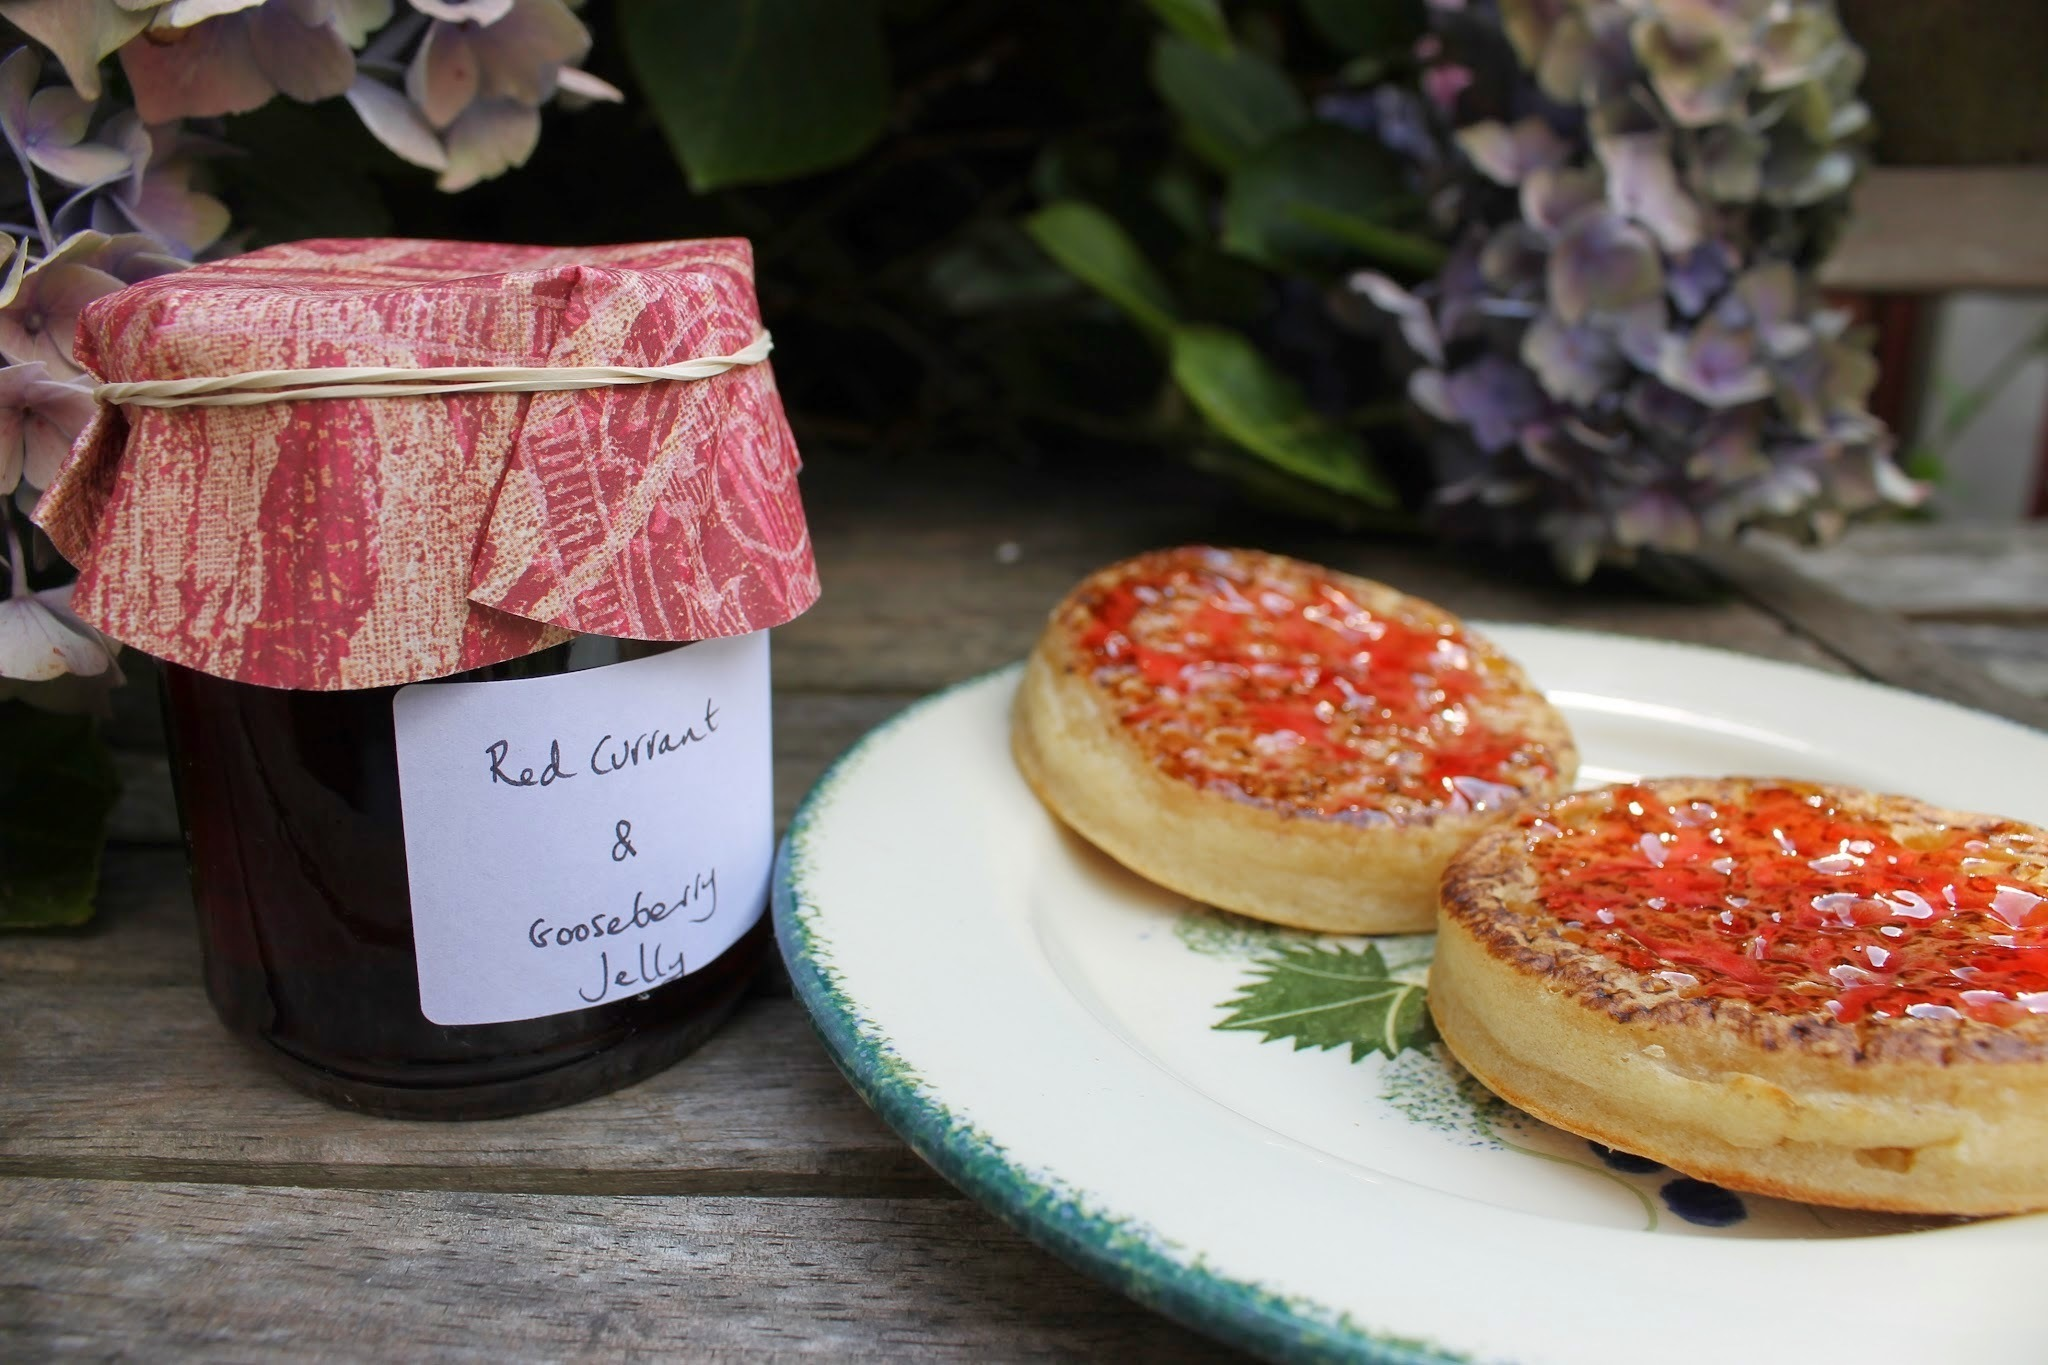 Redcurrant and gooseberry jelly